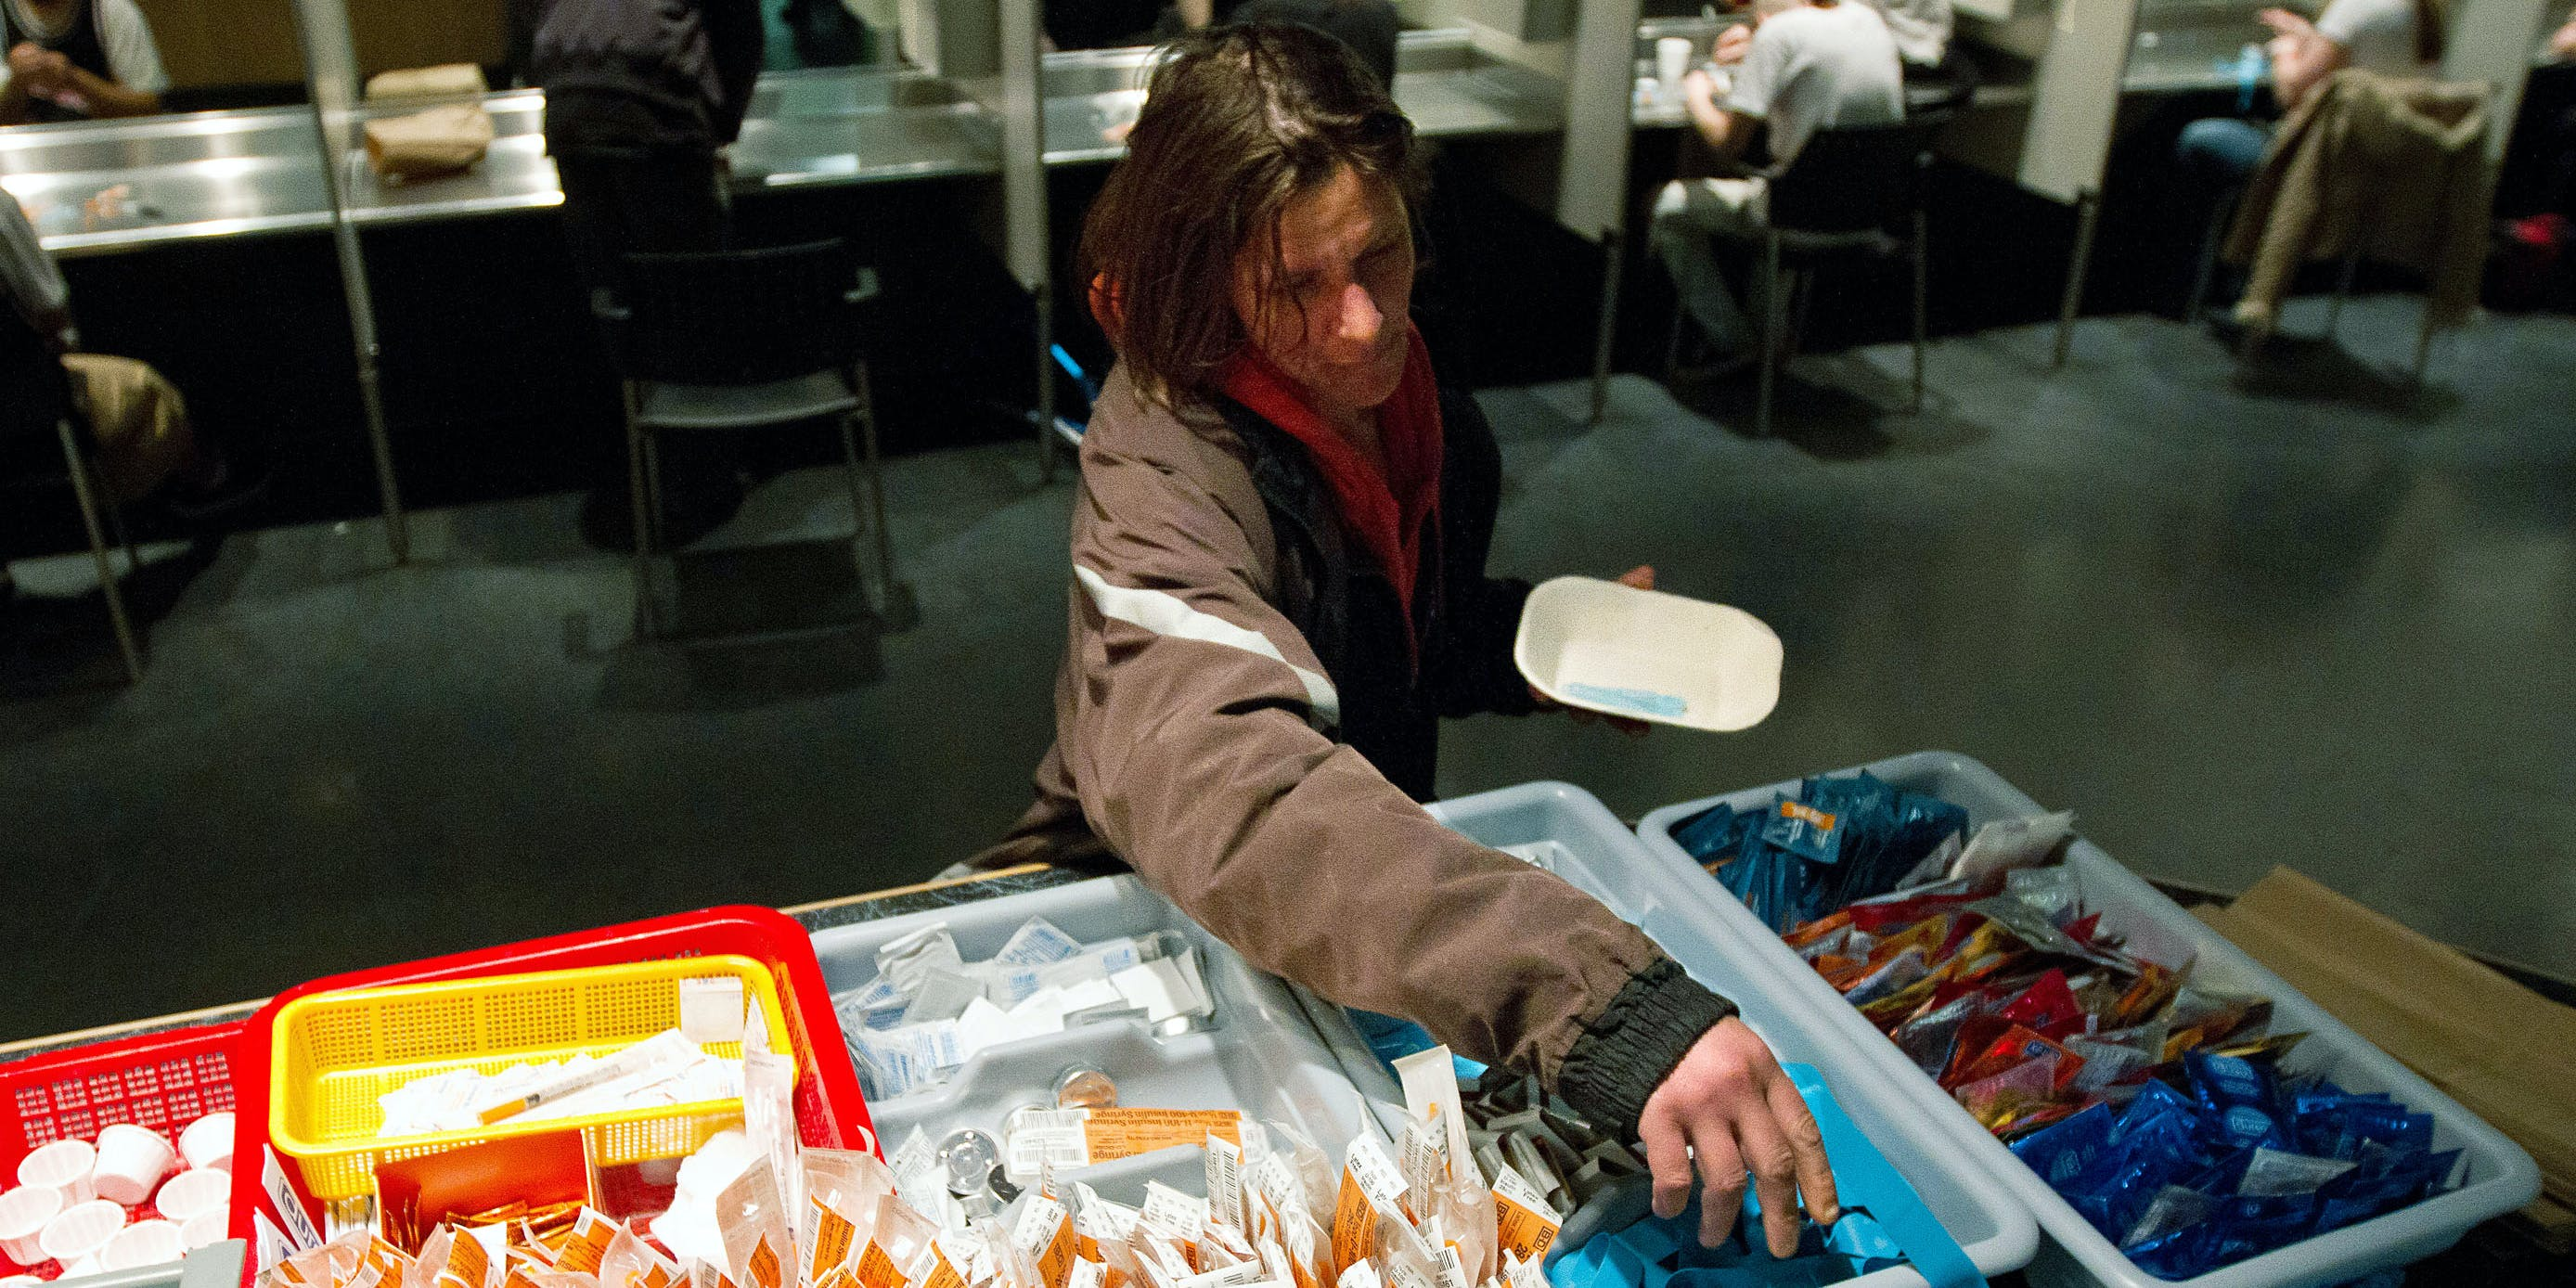 A client of the Insite supervised injection Center in Vancouver, Canada collects her kit on May 3, 2011. Toronto Public Health is currently calling on Canada to decriminalizes all drugs. (Photo by Laurent Vu The/AFP via Getty Images)